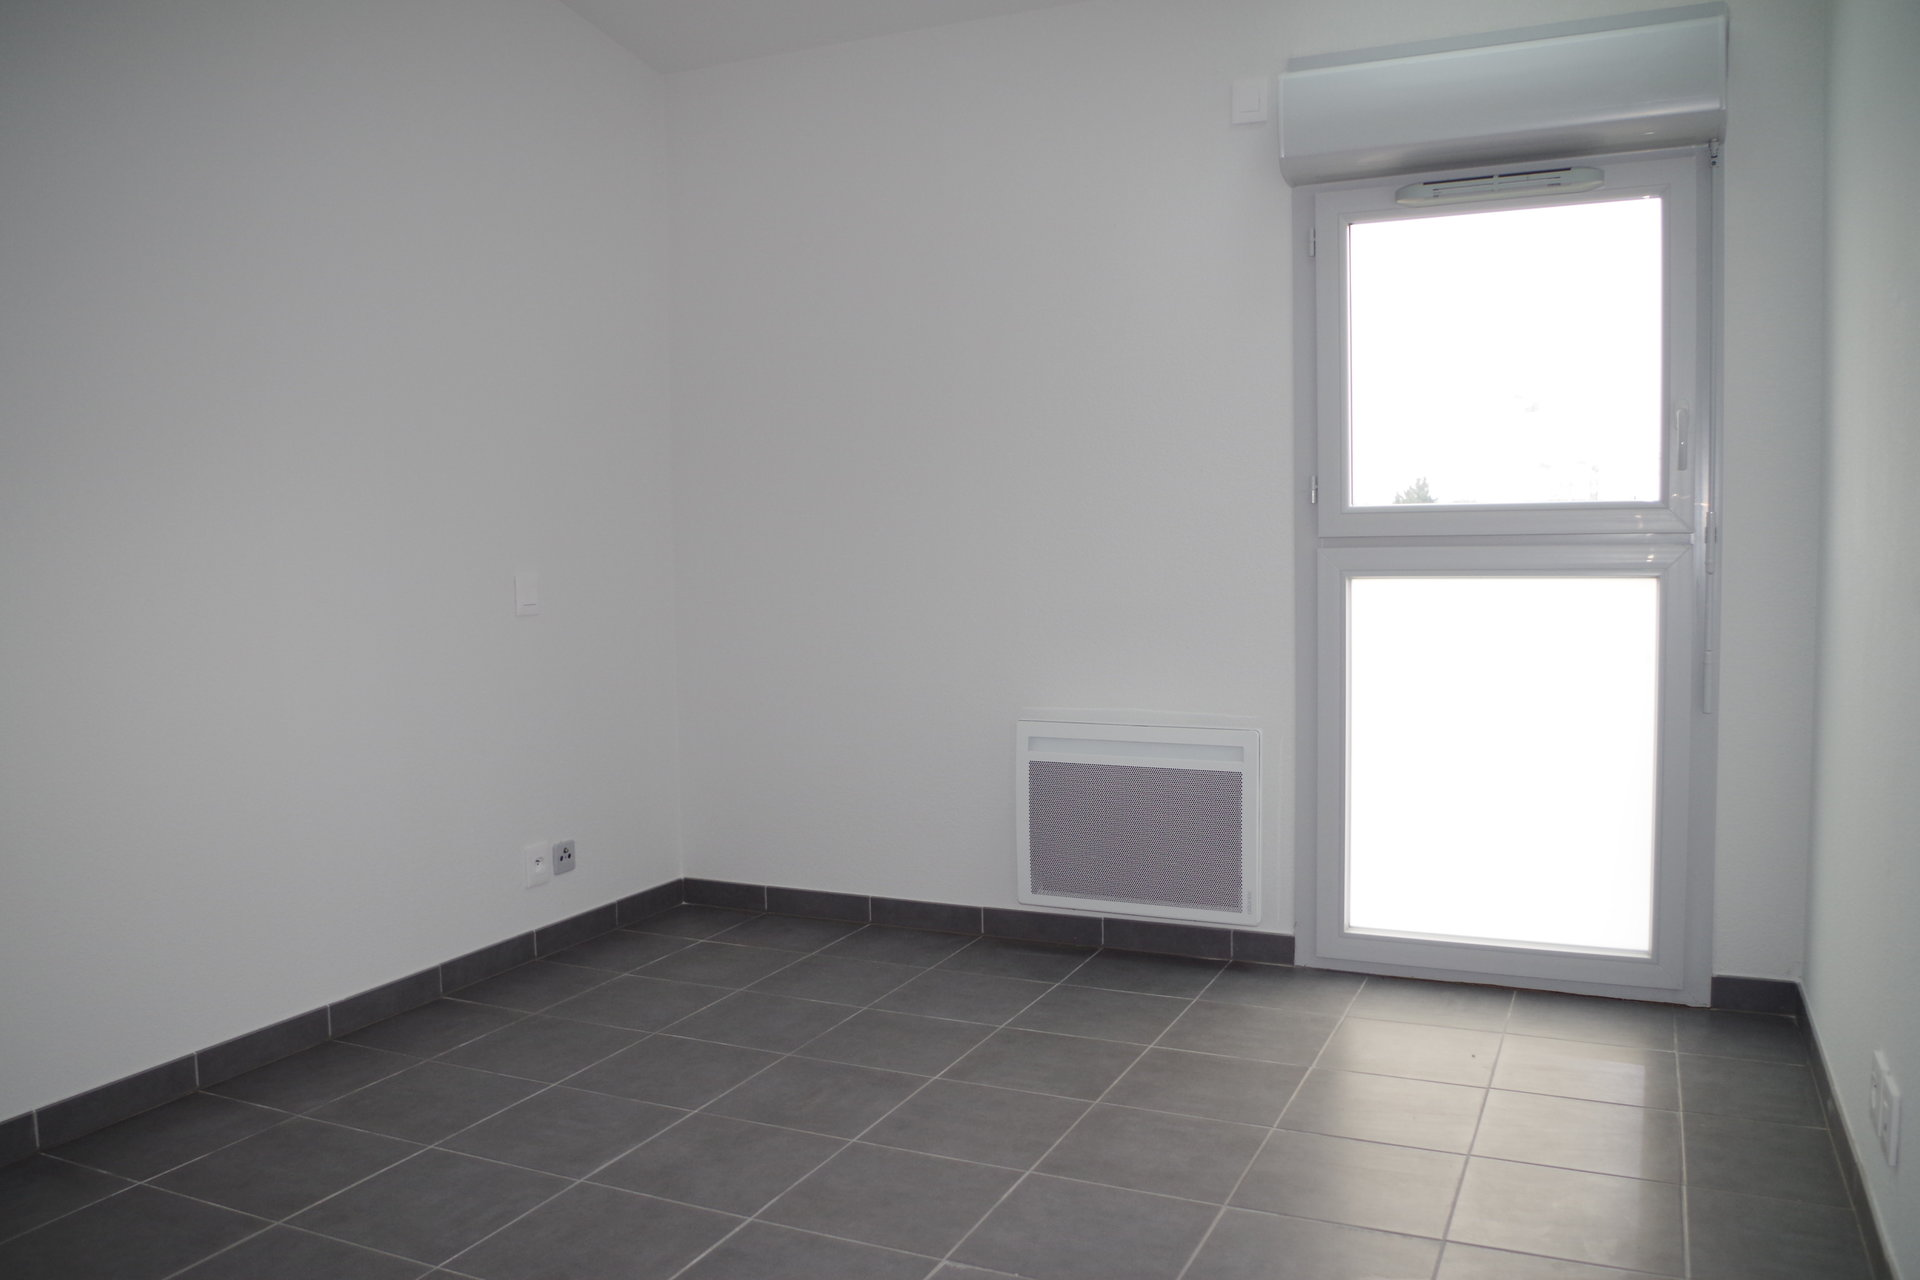 Appartement T3 - 62 m² - VILLENEUVE TOLOSANE